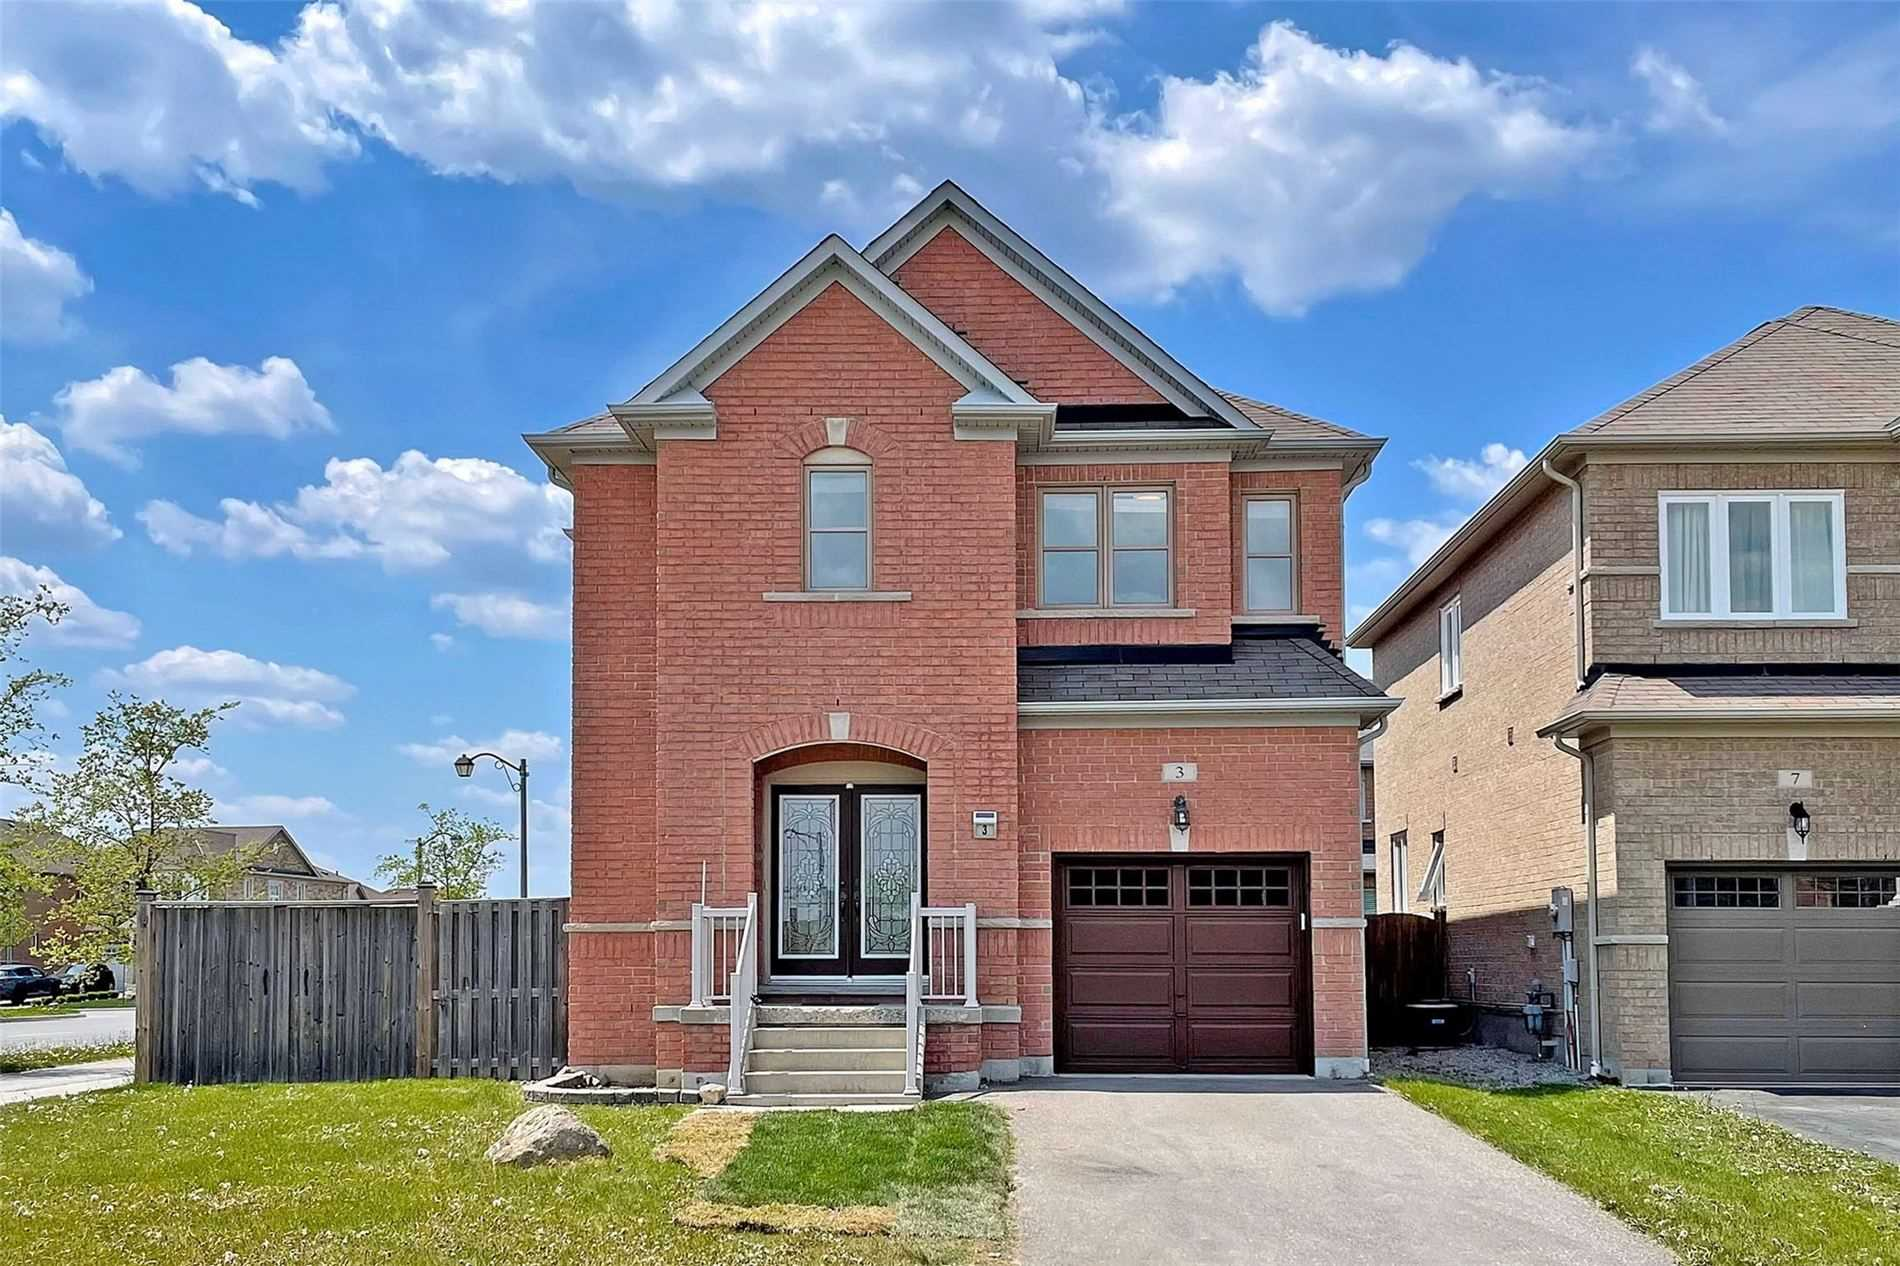 pictures of house for sale MLS: N5241721 located at 3 Willharper Gate, Whitchurch-Stouffville L4A0S4